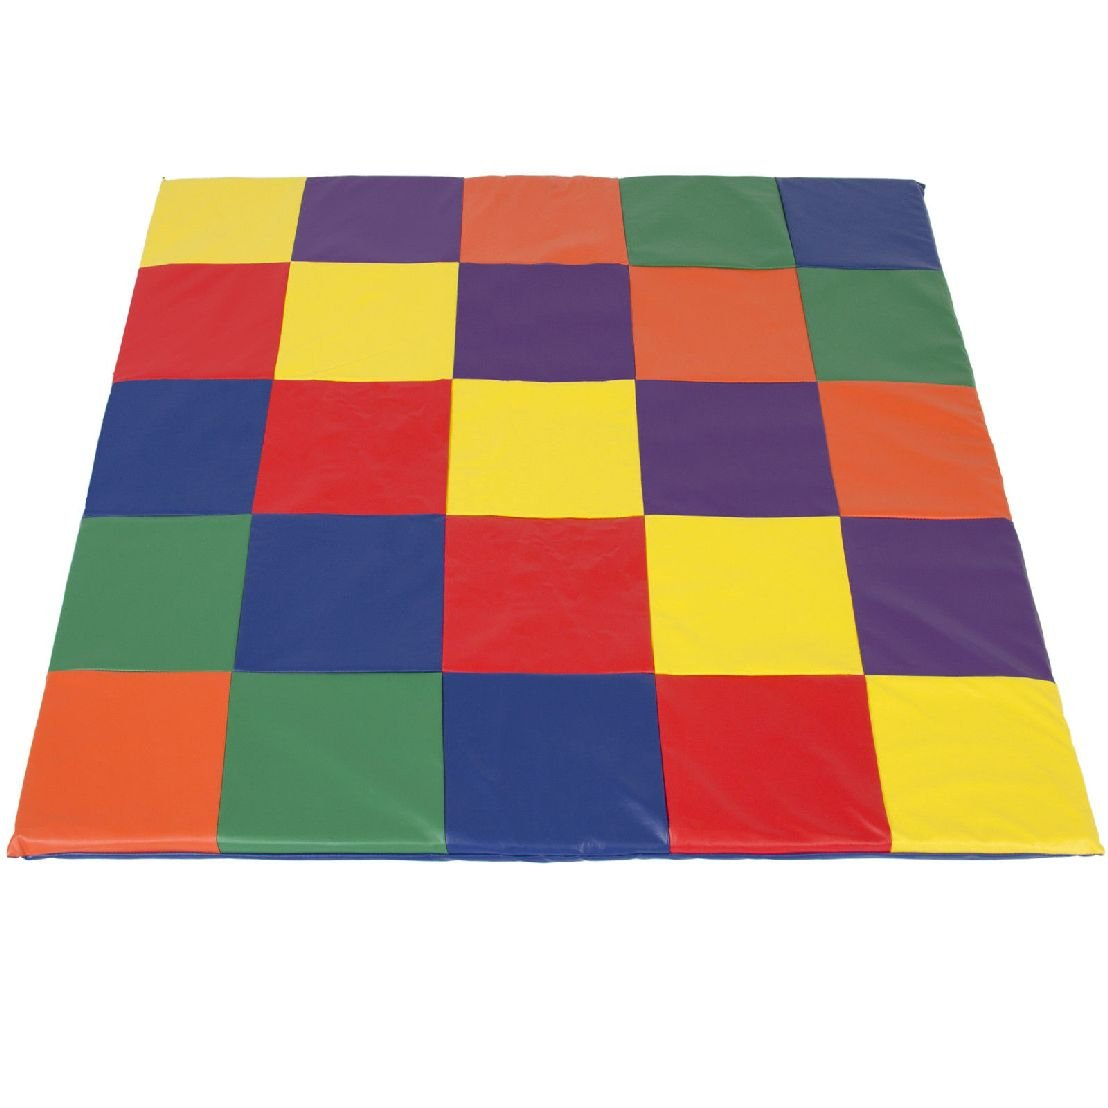 Kids Soft Cushioned Toddler Play Mat Mutli Colored Activity Play Rest Time